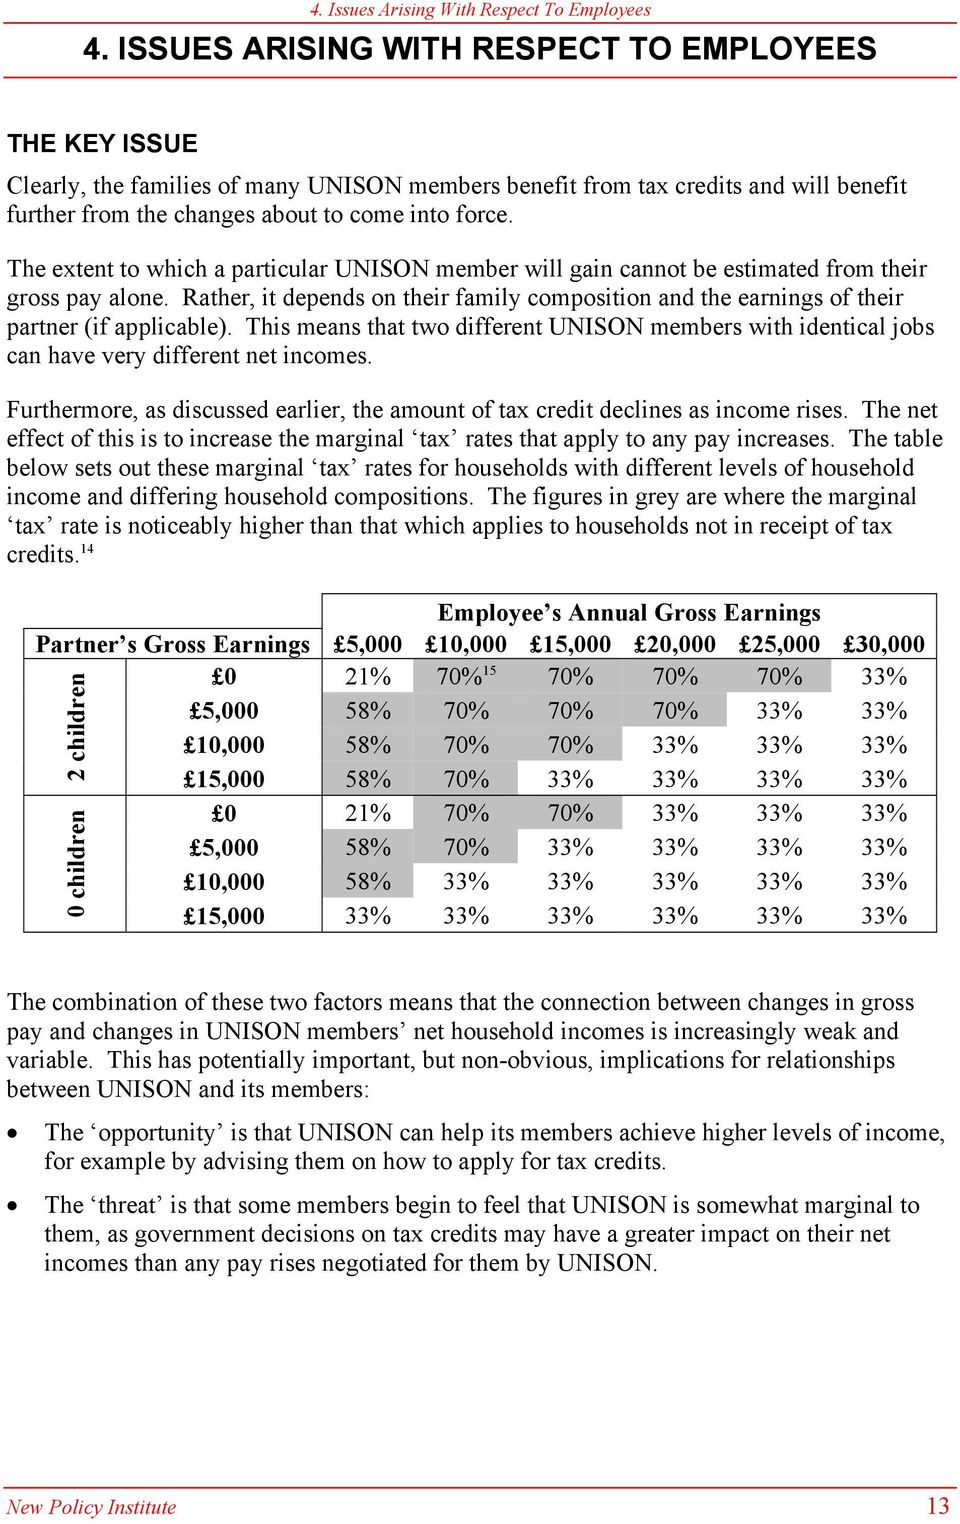 The extent to which a particular UNISON member will gain cannot be estimated from their gross pay alone.